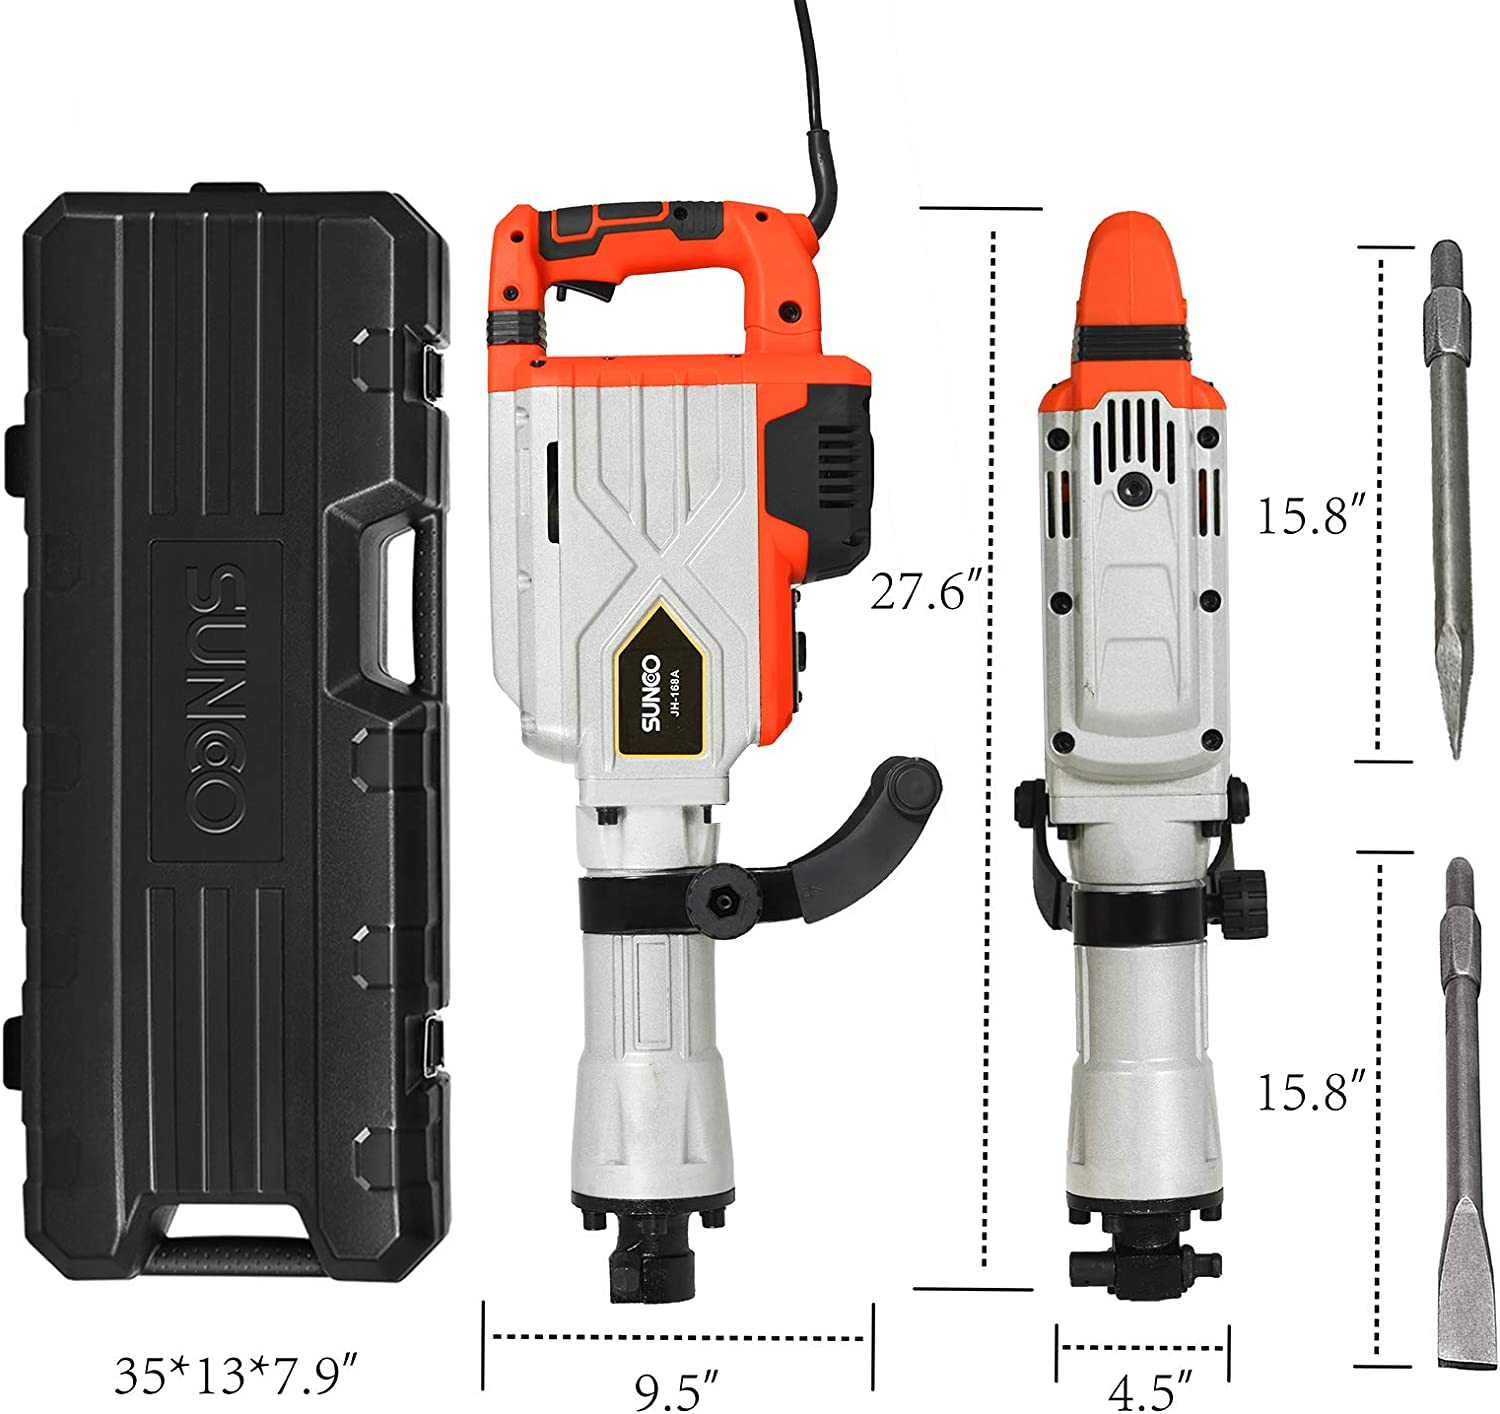 Wheeled Case 1900BPM Heavy Duty Jackhammer Powerful Rock Pavement Concrete Breaker Drills Kit with Gloves Goggle and Flat/&Point Chisels Bits SUNCOO Electric Demolition Jack Hammer